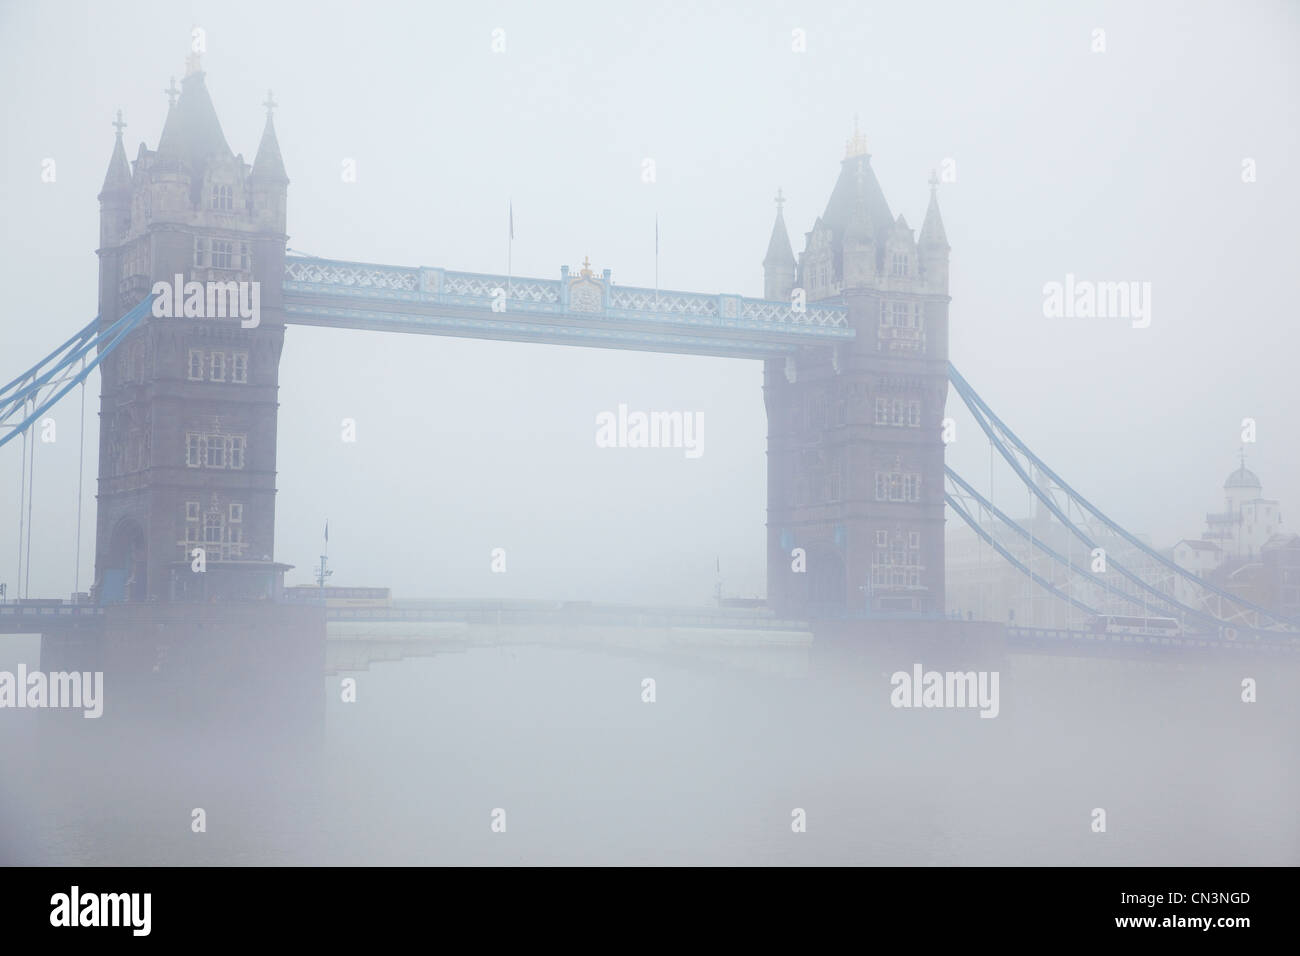 United Kingdom, London, Tower Bridge, bridge across the Thames linking the district of Southwark on the South bank Stock Photo